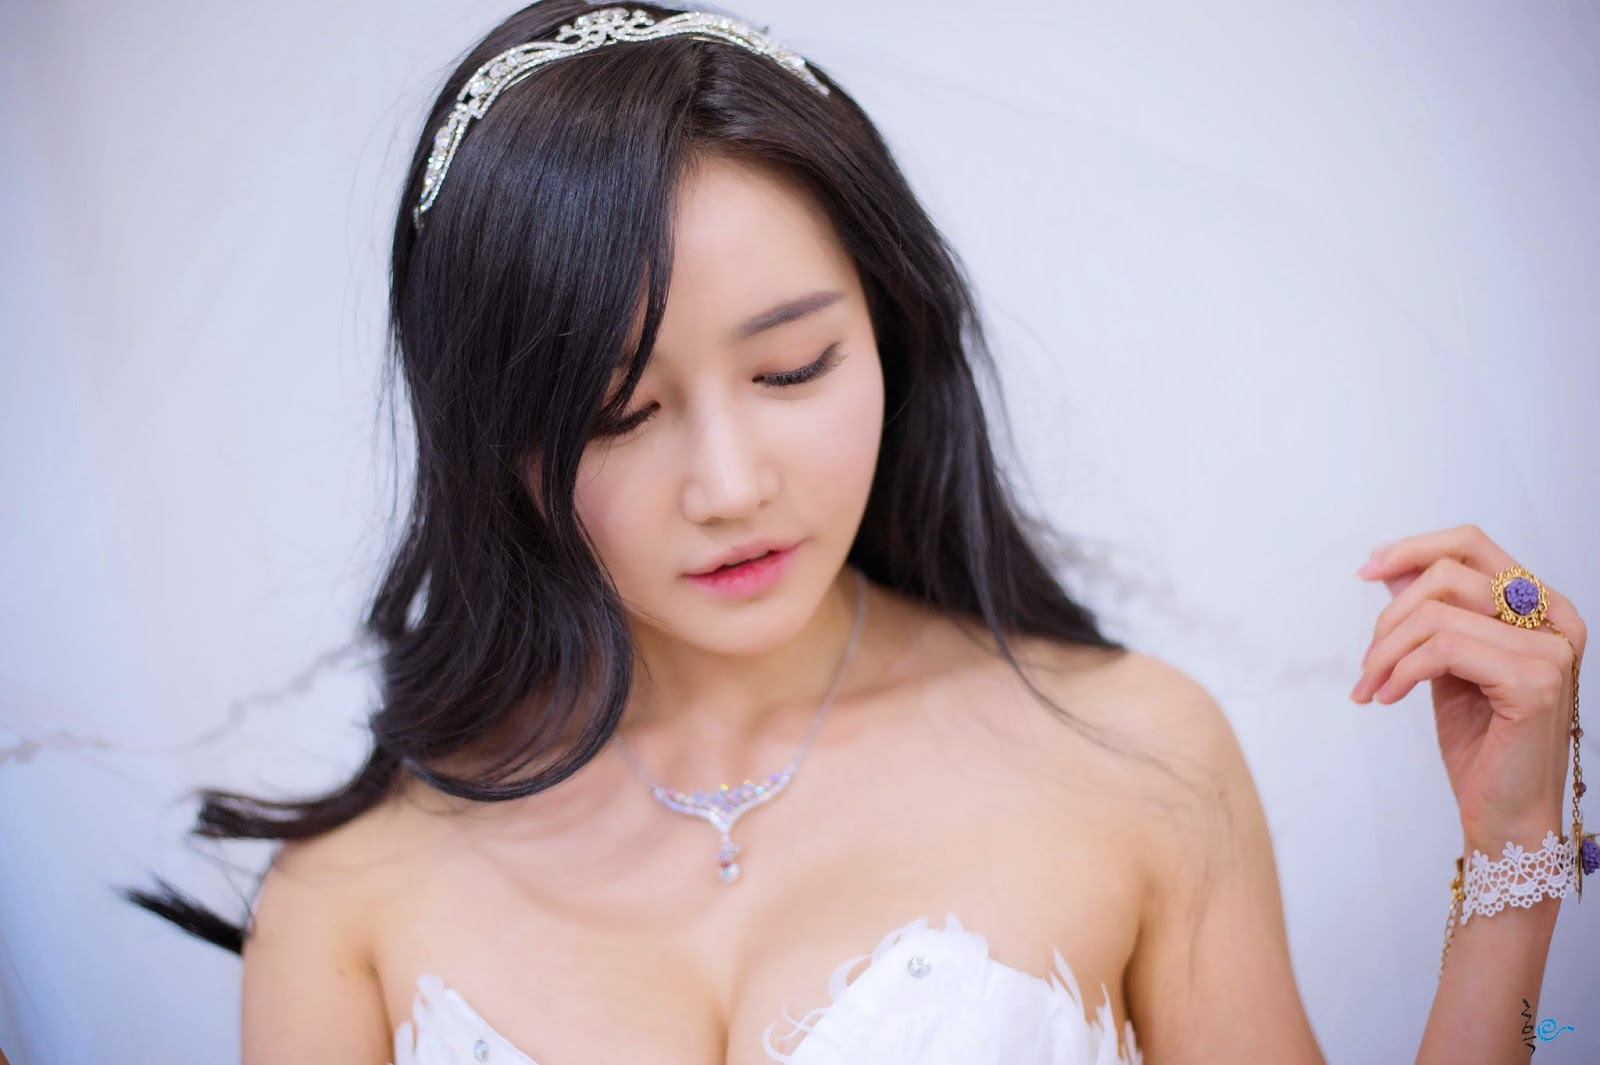 01 - Gorgeous Han Ga Eun In Wedding Dress - very cute asian girl-girlcute4u.blogspot.com